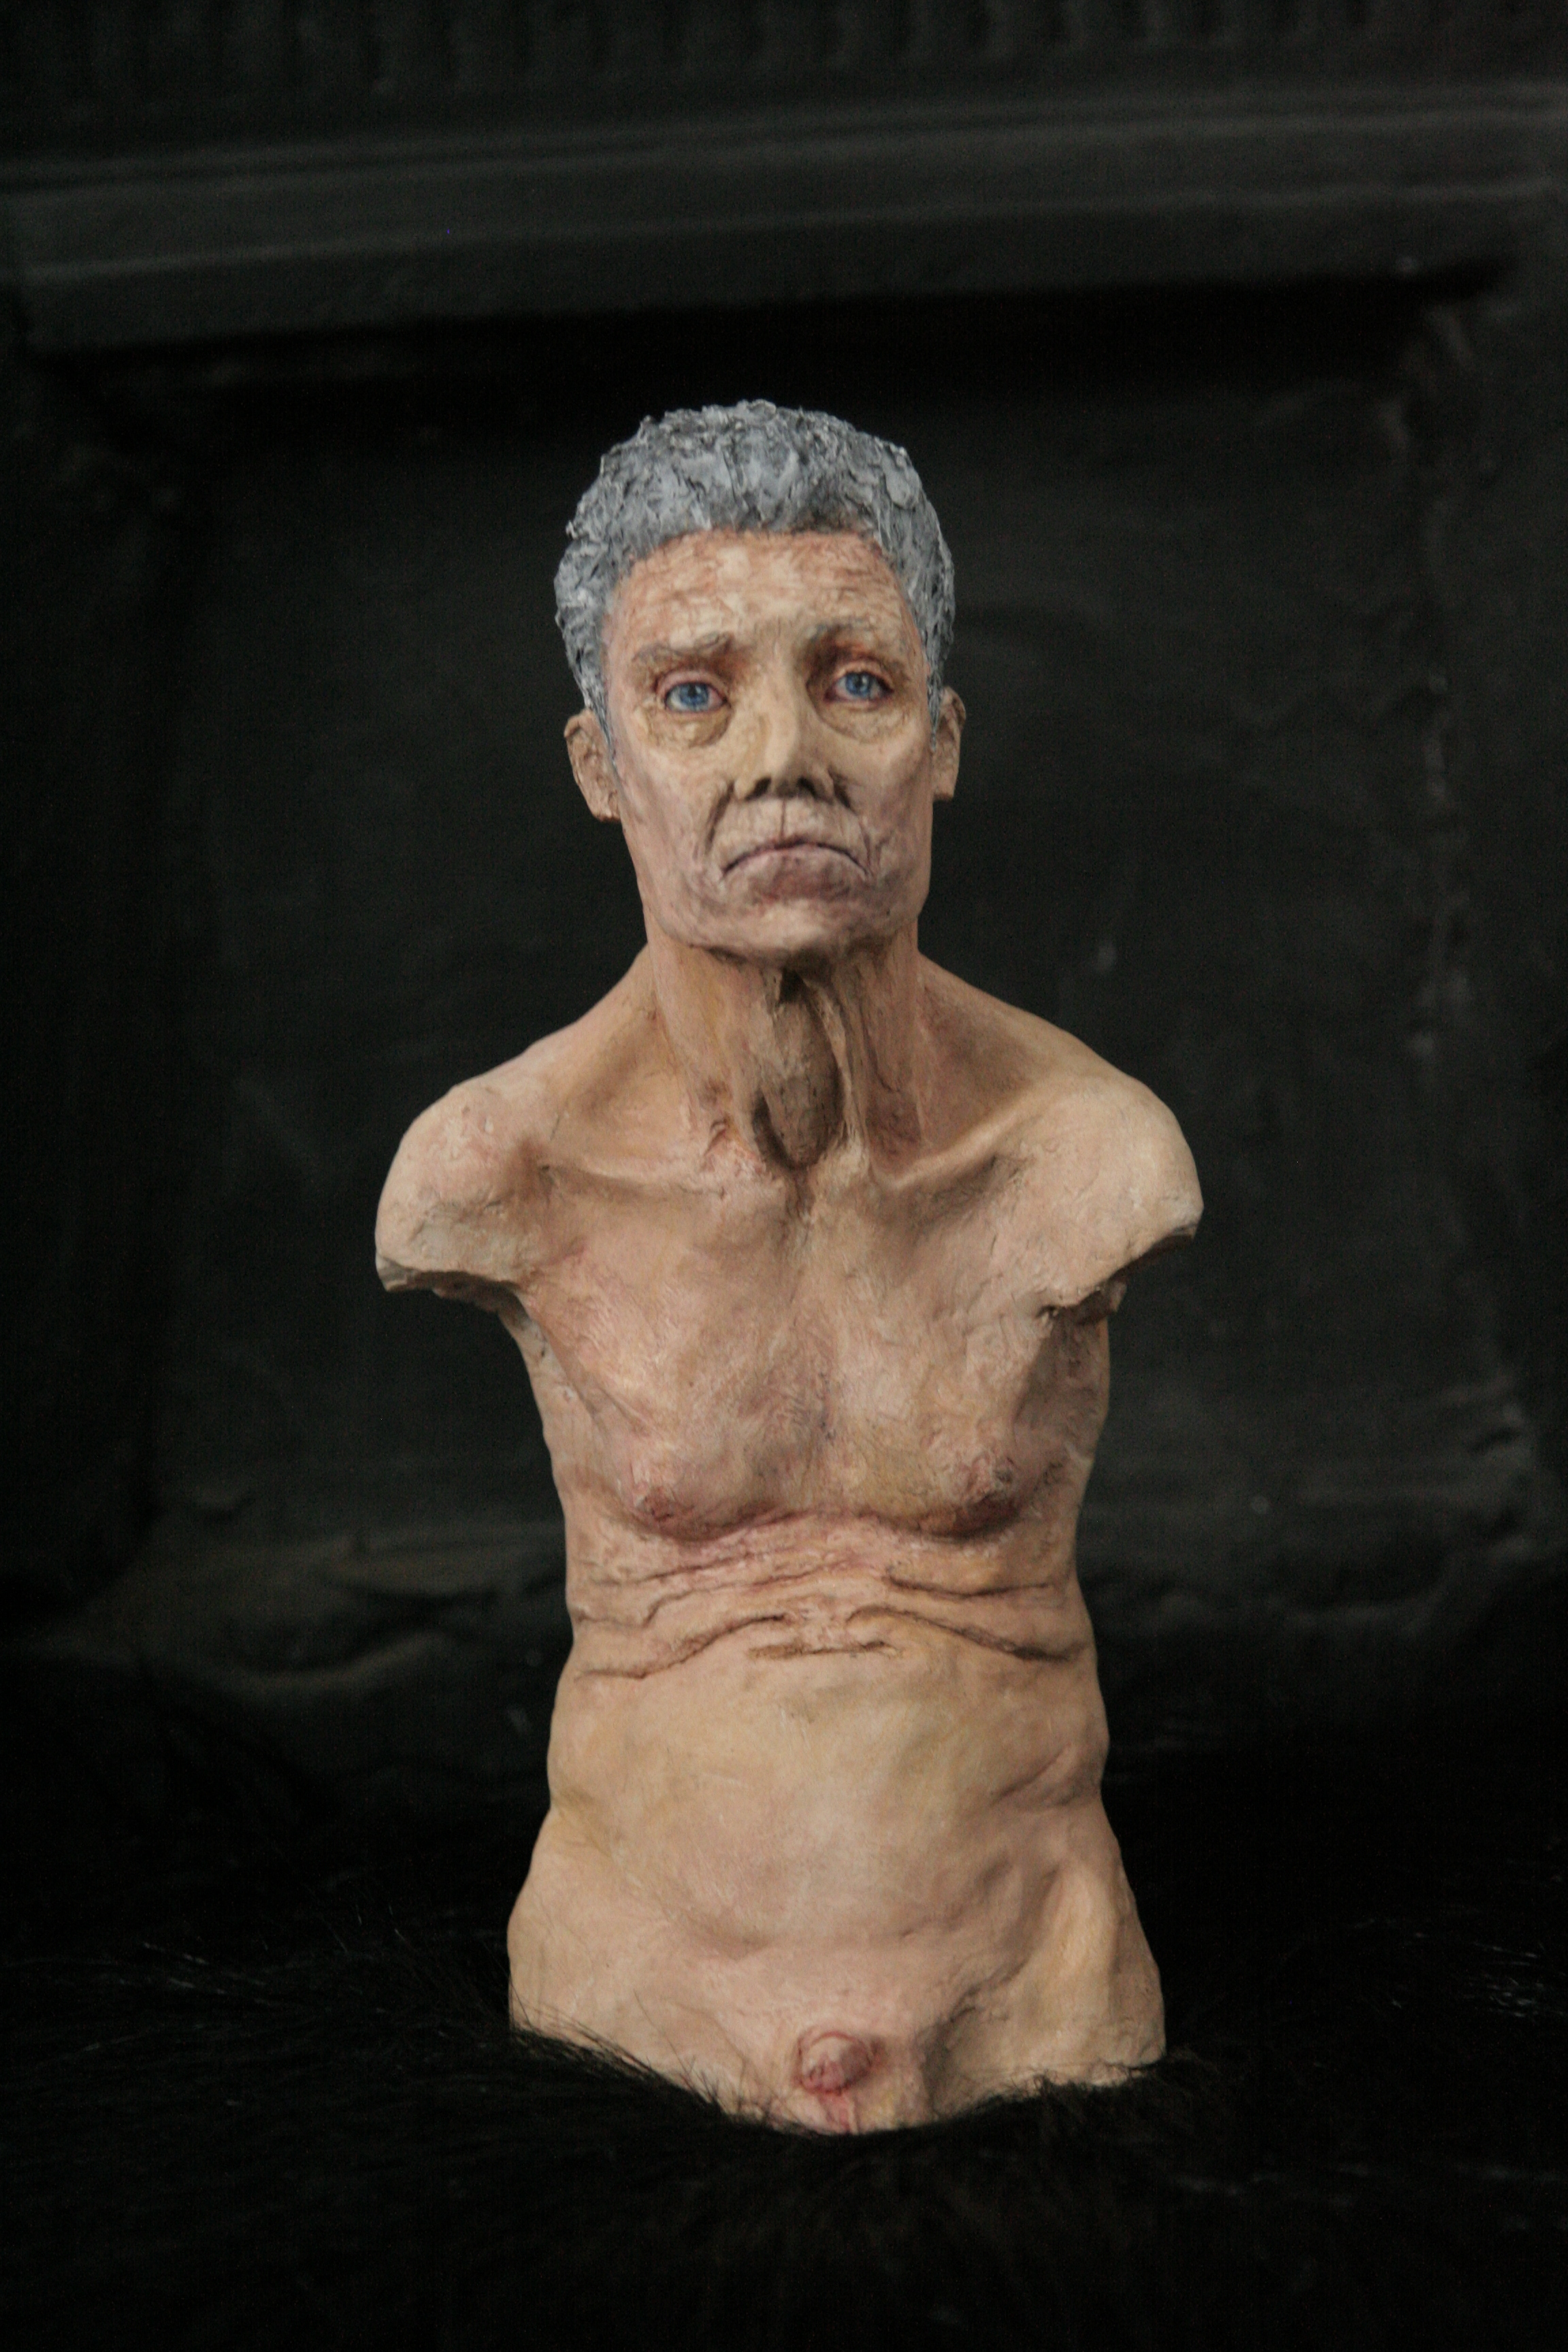 man-sculpture-olluna.JPG